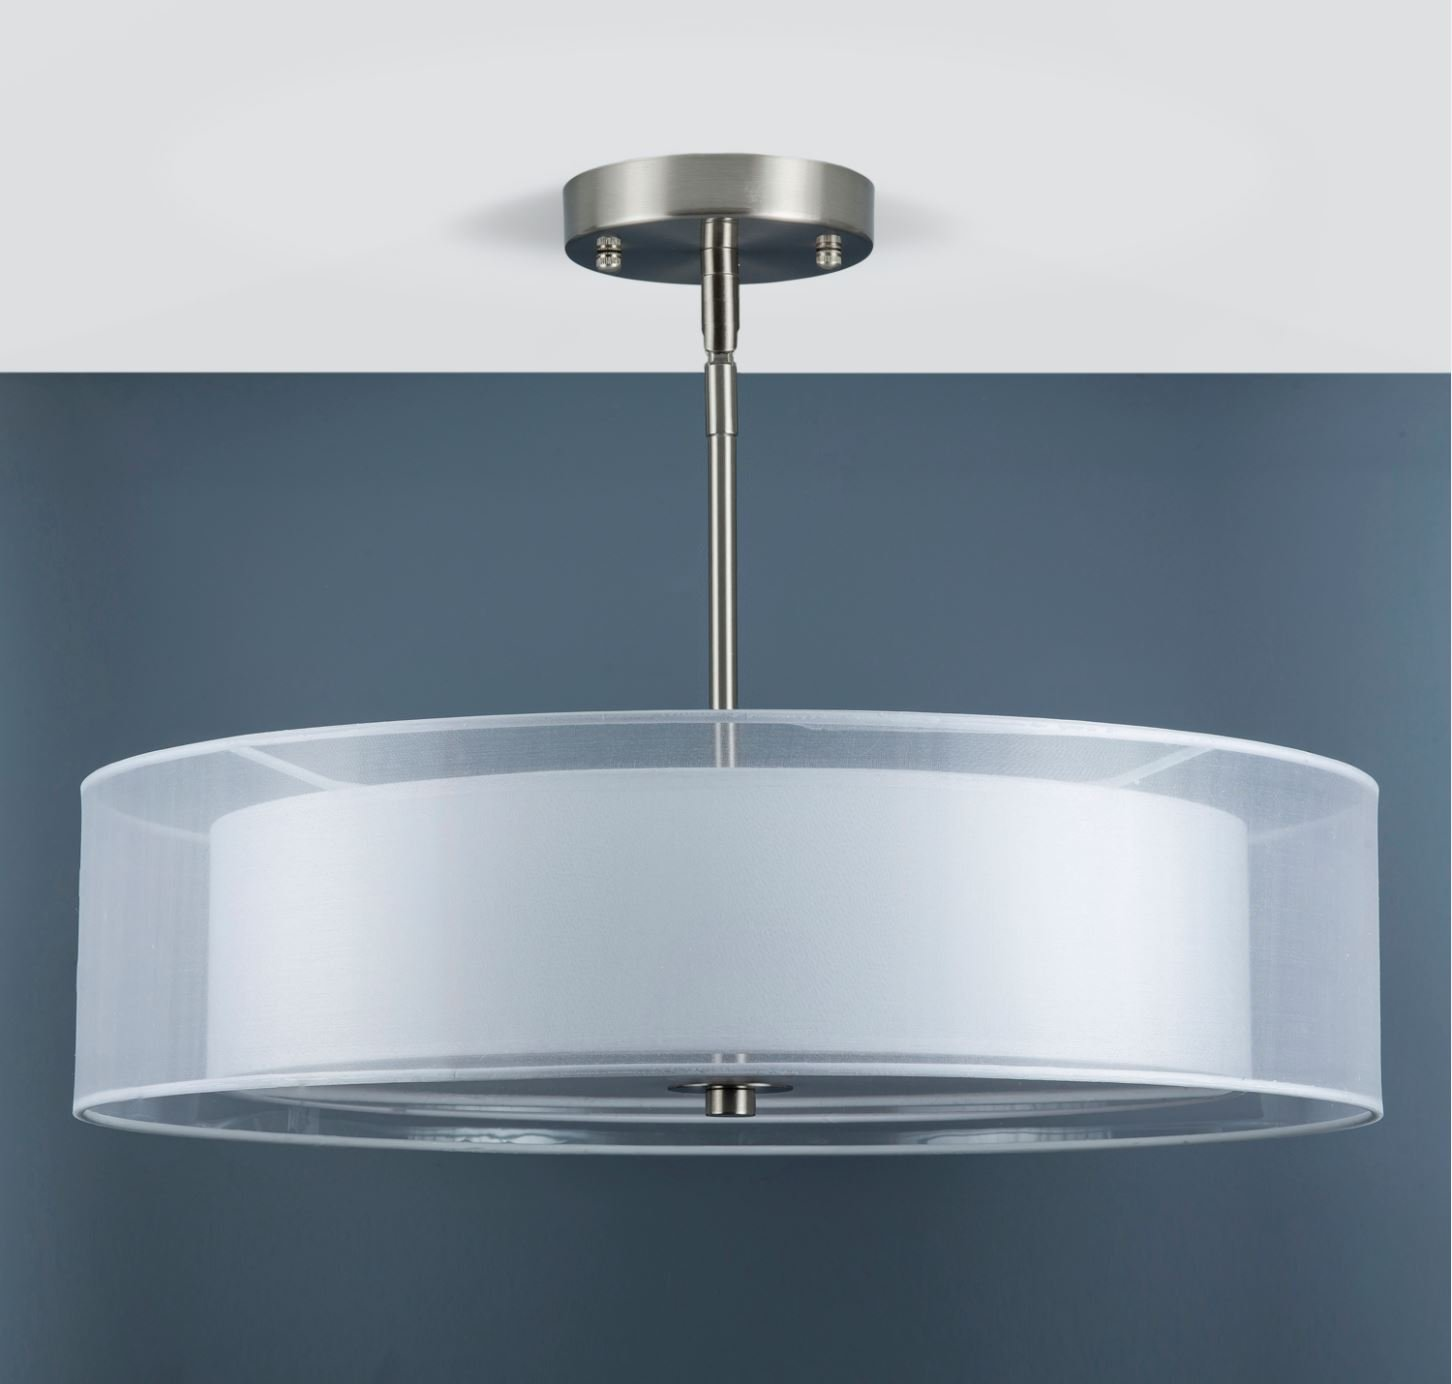 Grazia 20 inch 3 Light Drum Chandelier Ceiling Light - Brushed ...